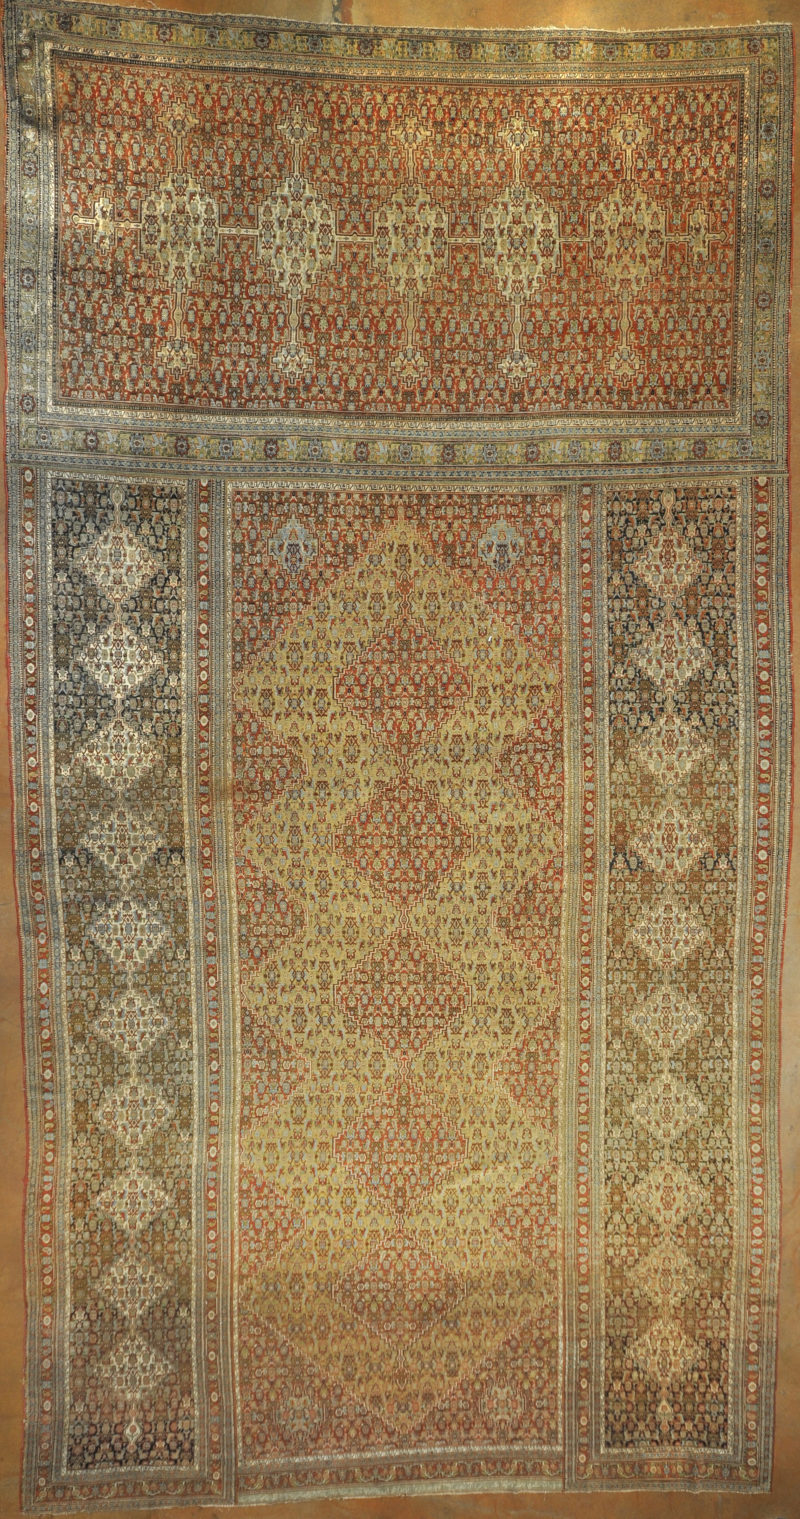 triclinium Rug rugs and more oriental carpet-8